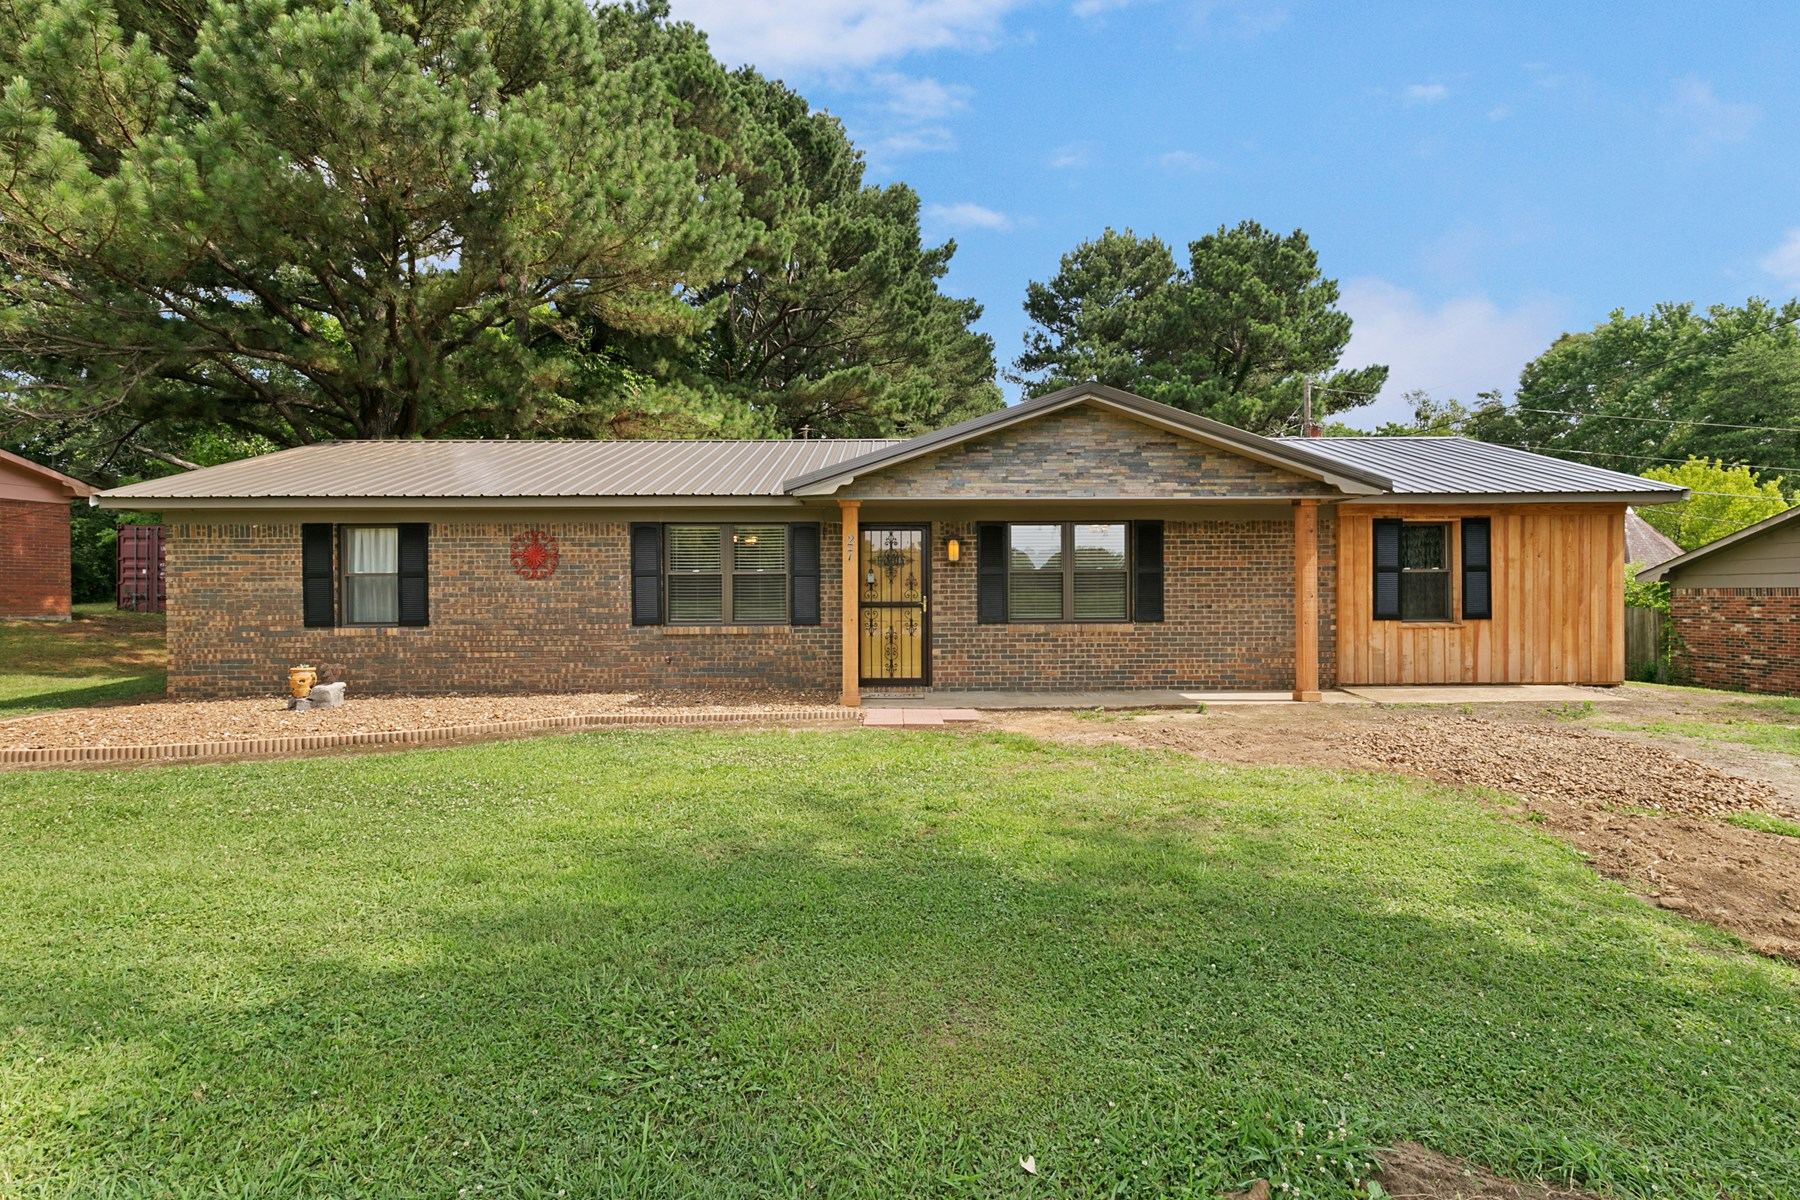 Newly Remodeled Brick Ranch Home For Sale Outside City Limit